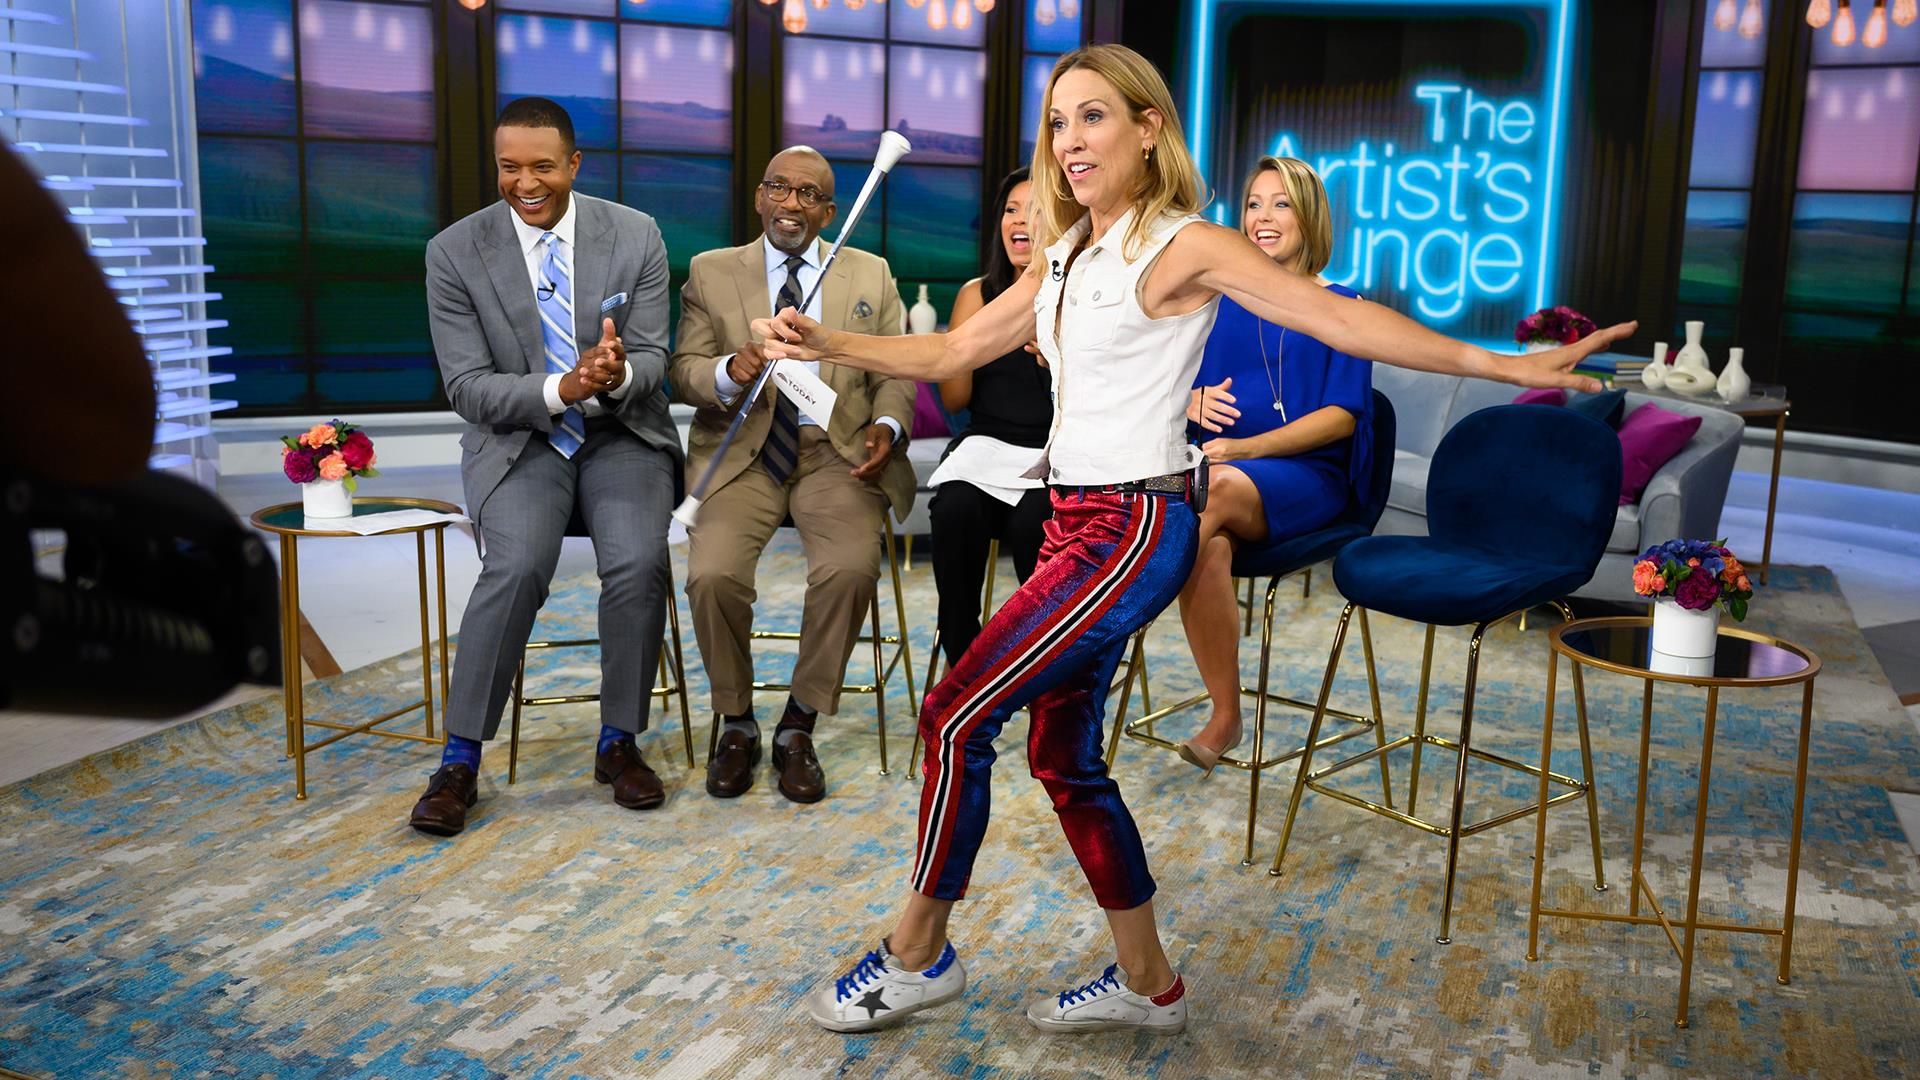 Sheryl Crow shows off her baton twirling skills